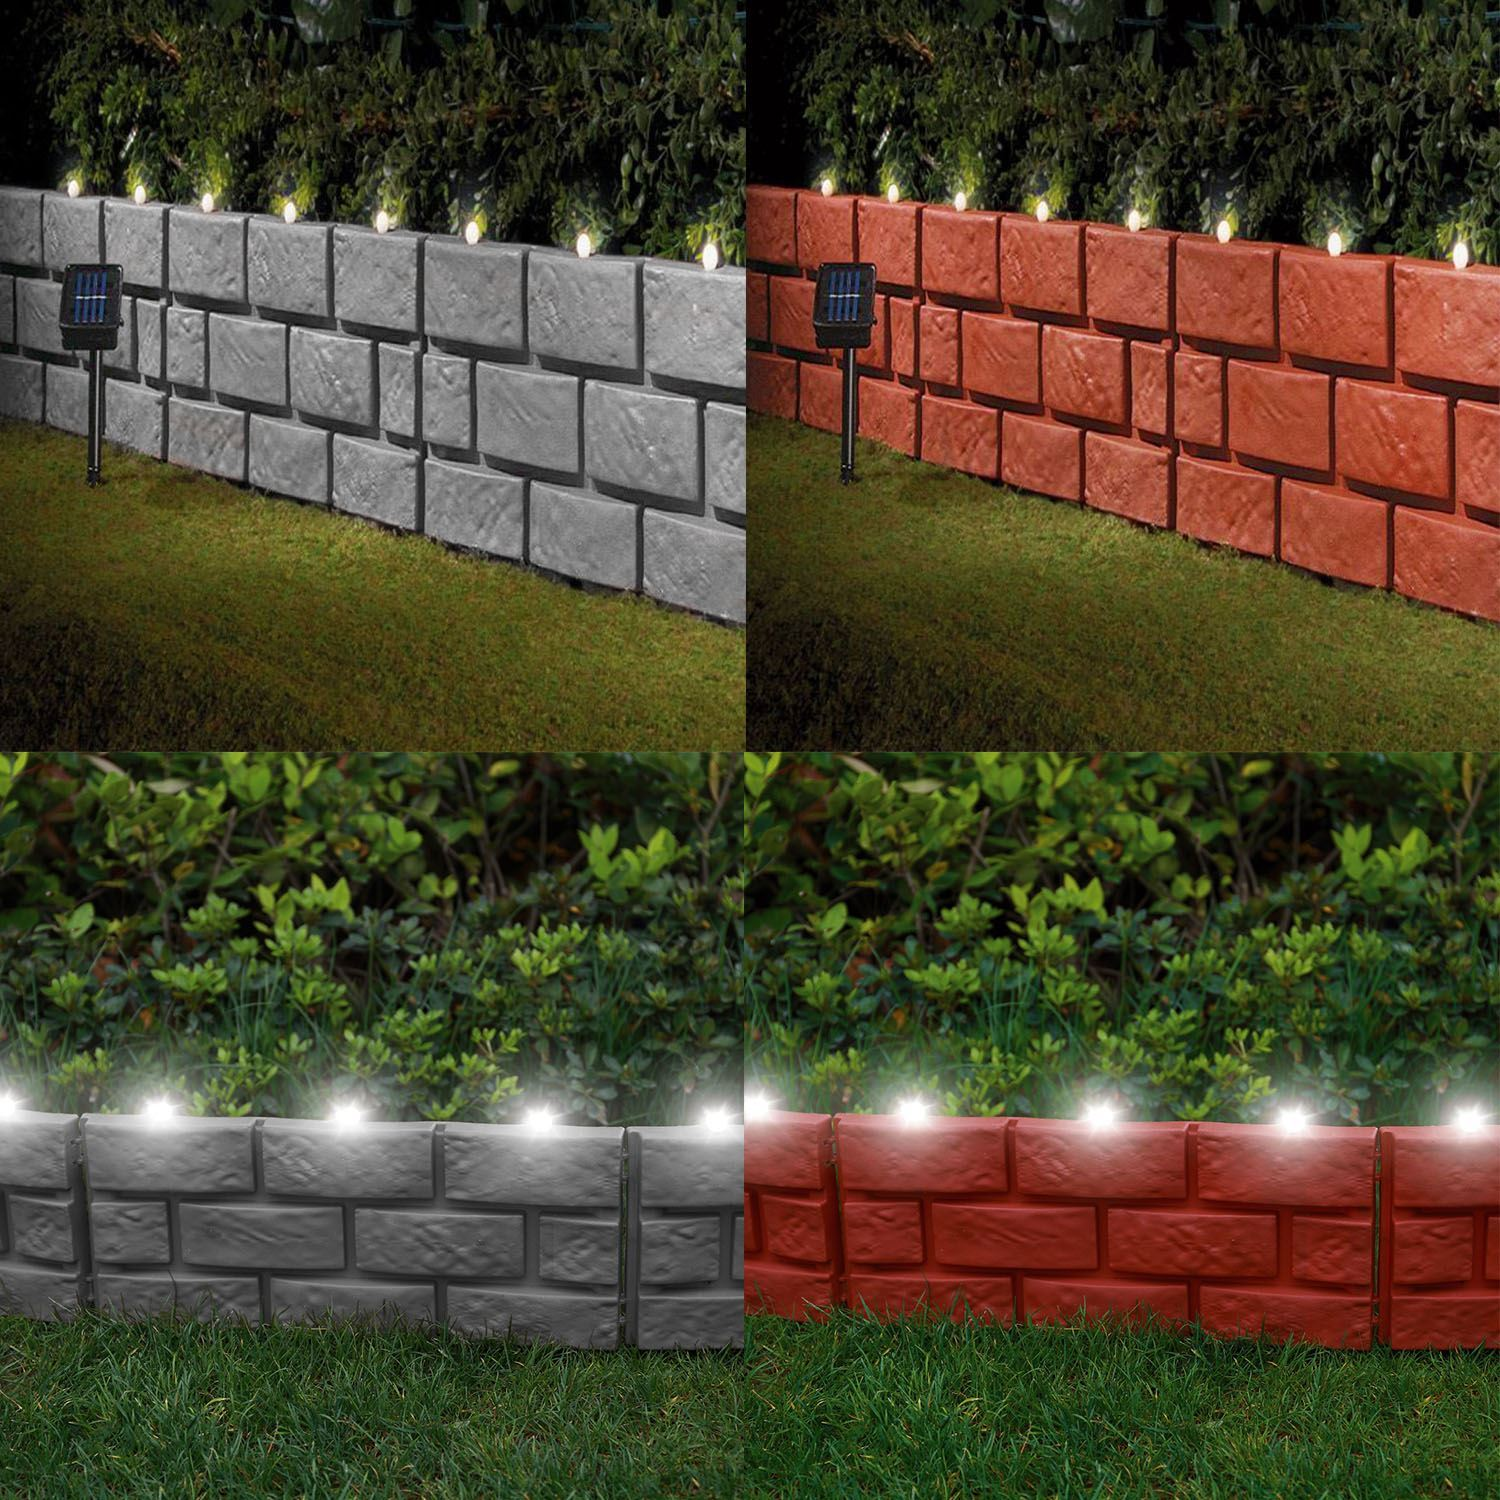 Instant Brick Effect Border Lawn Edging With Led Lights Plant Border Hammer In Ebay